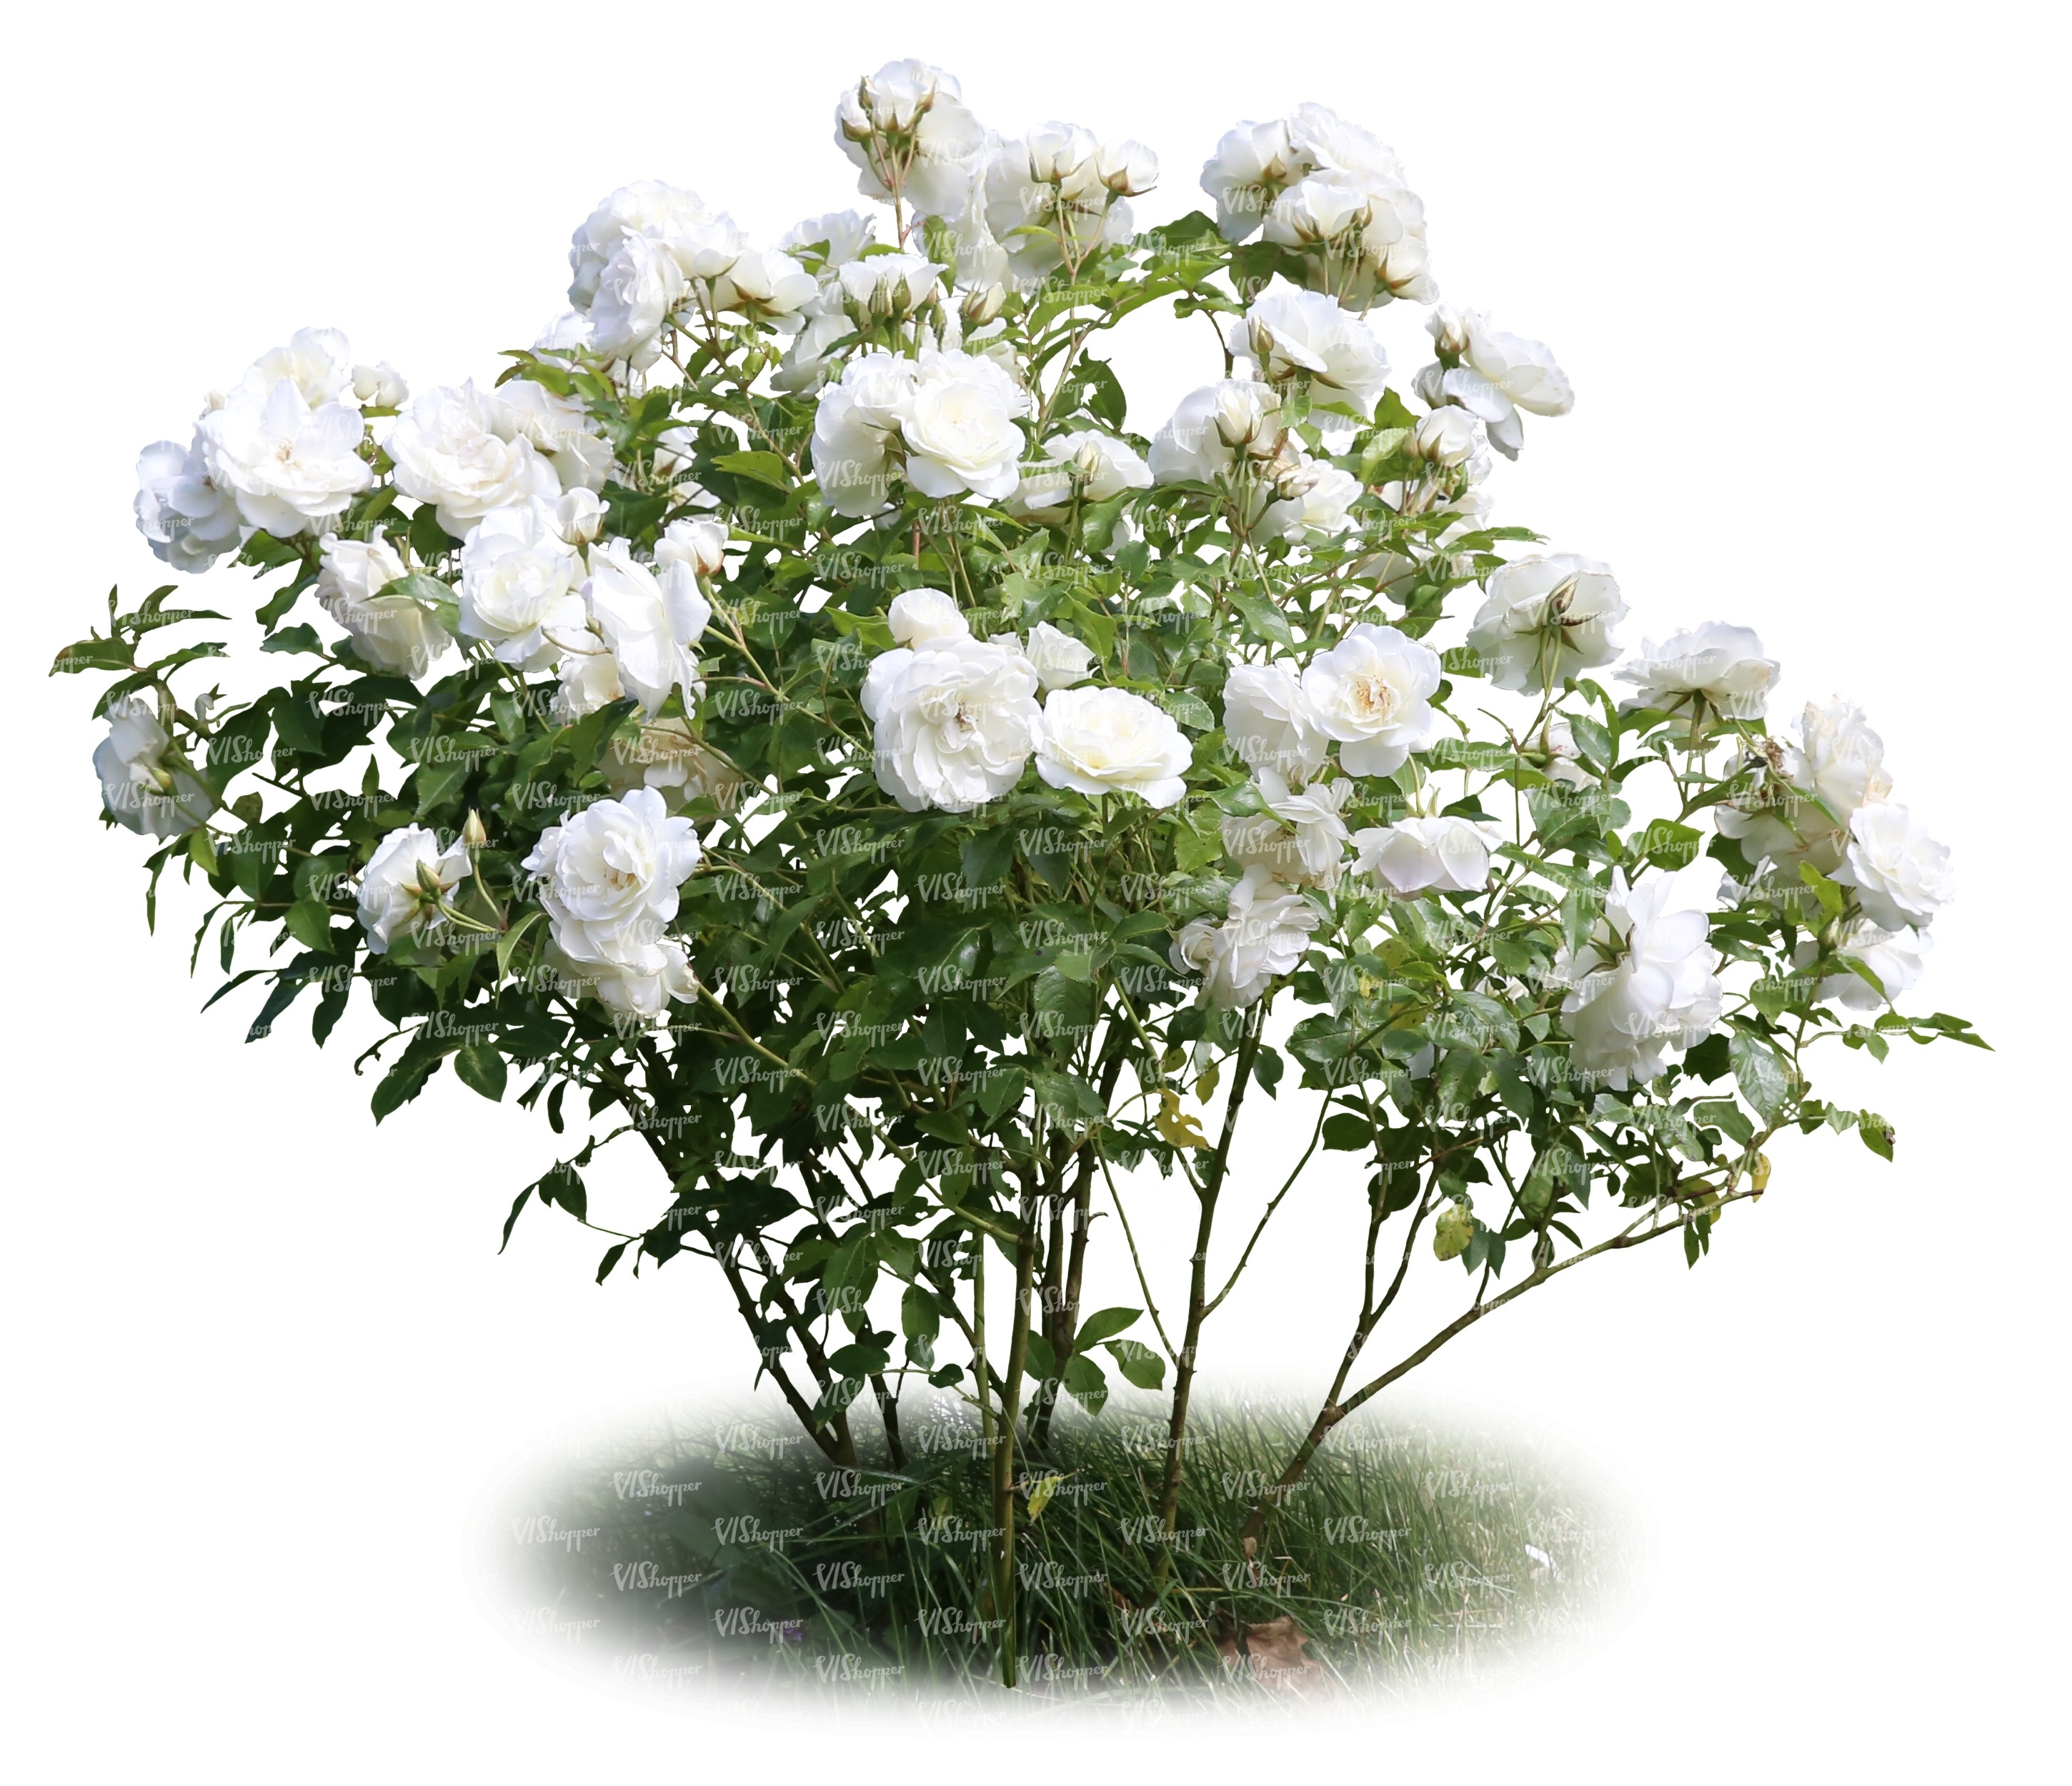 cut out blooming white rosebush - cut out trees and plants - VIShopper